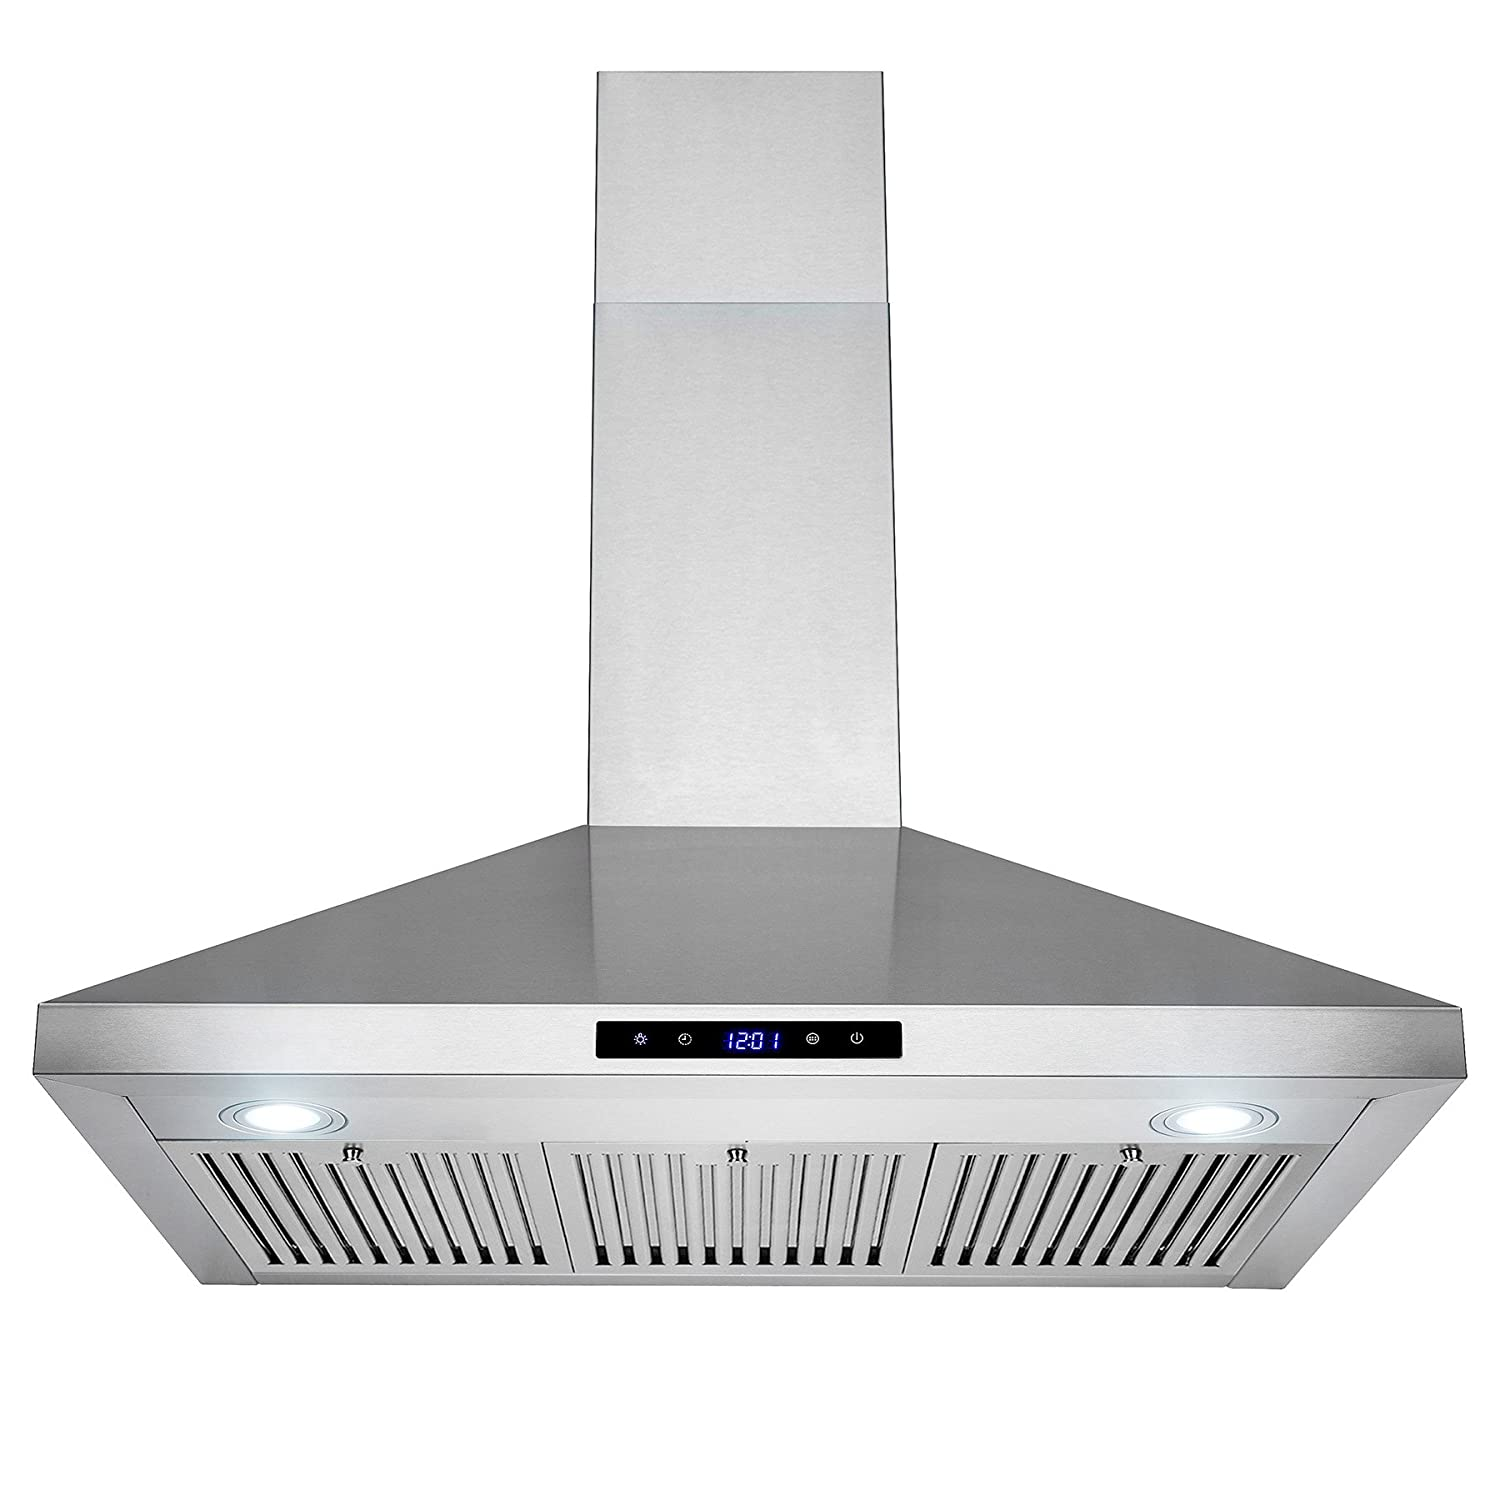 FIREBIRD New 36 European Style Wall Mount Stainless Steel Range Hood Vent W/Push Button Control FBTK-S307H-90 RH0356